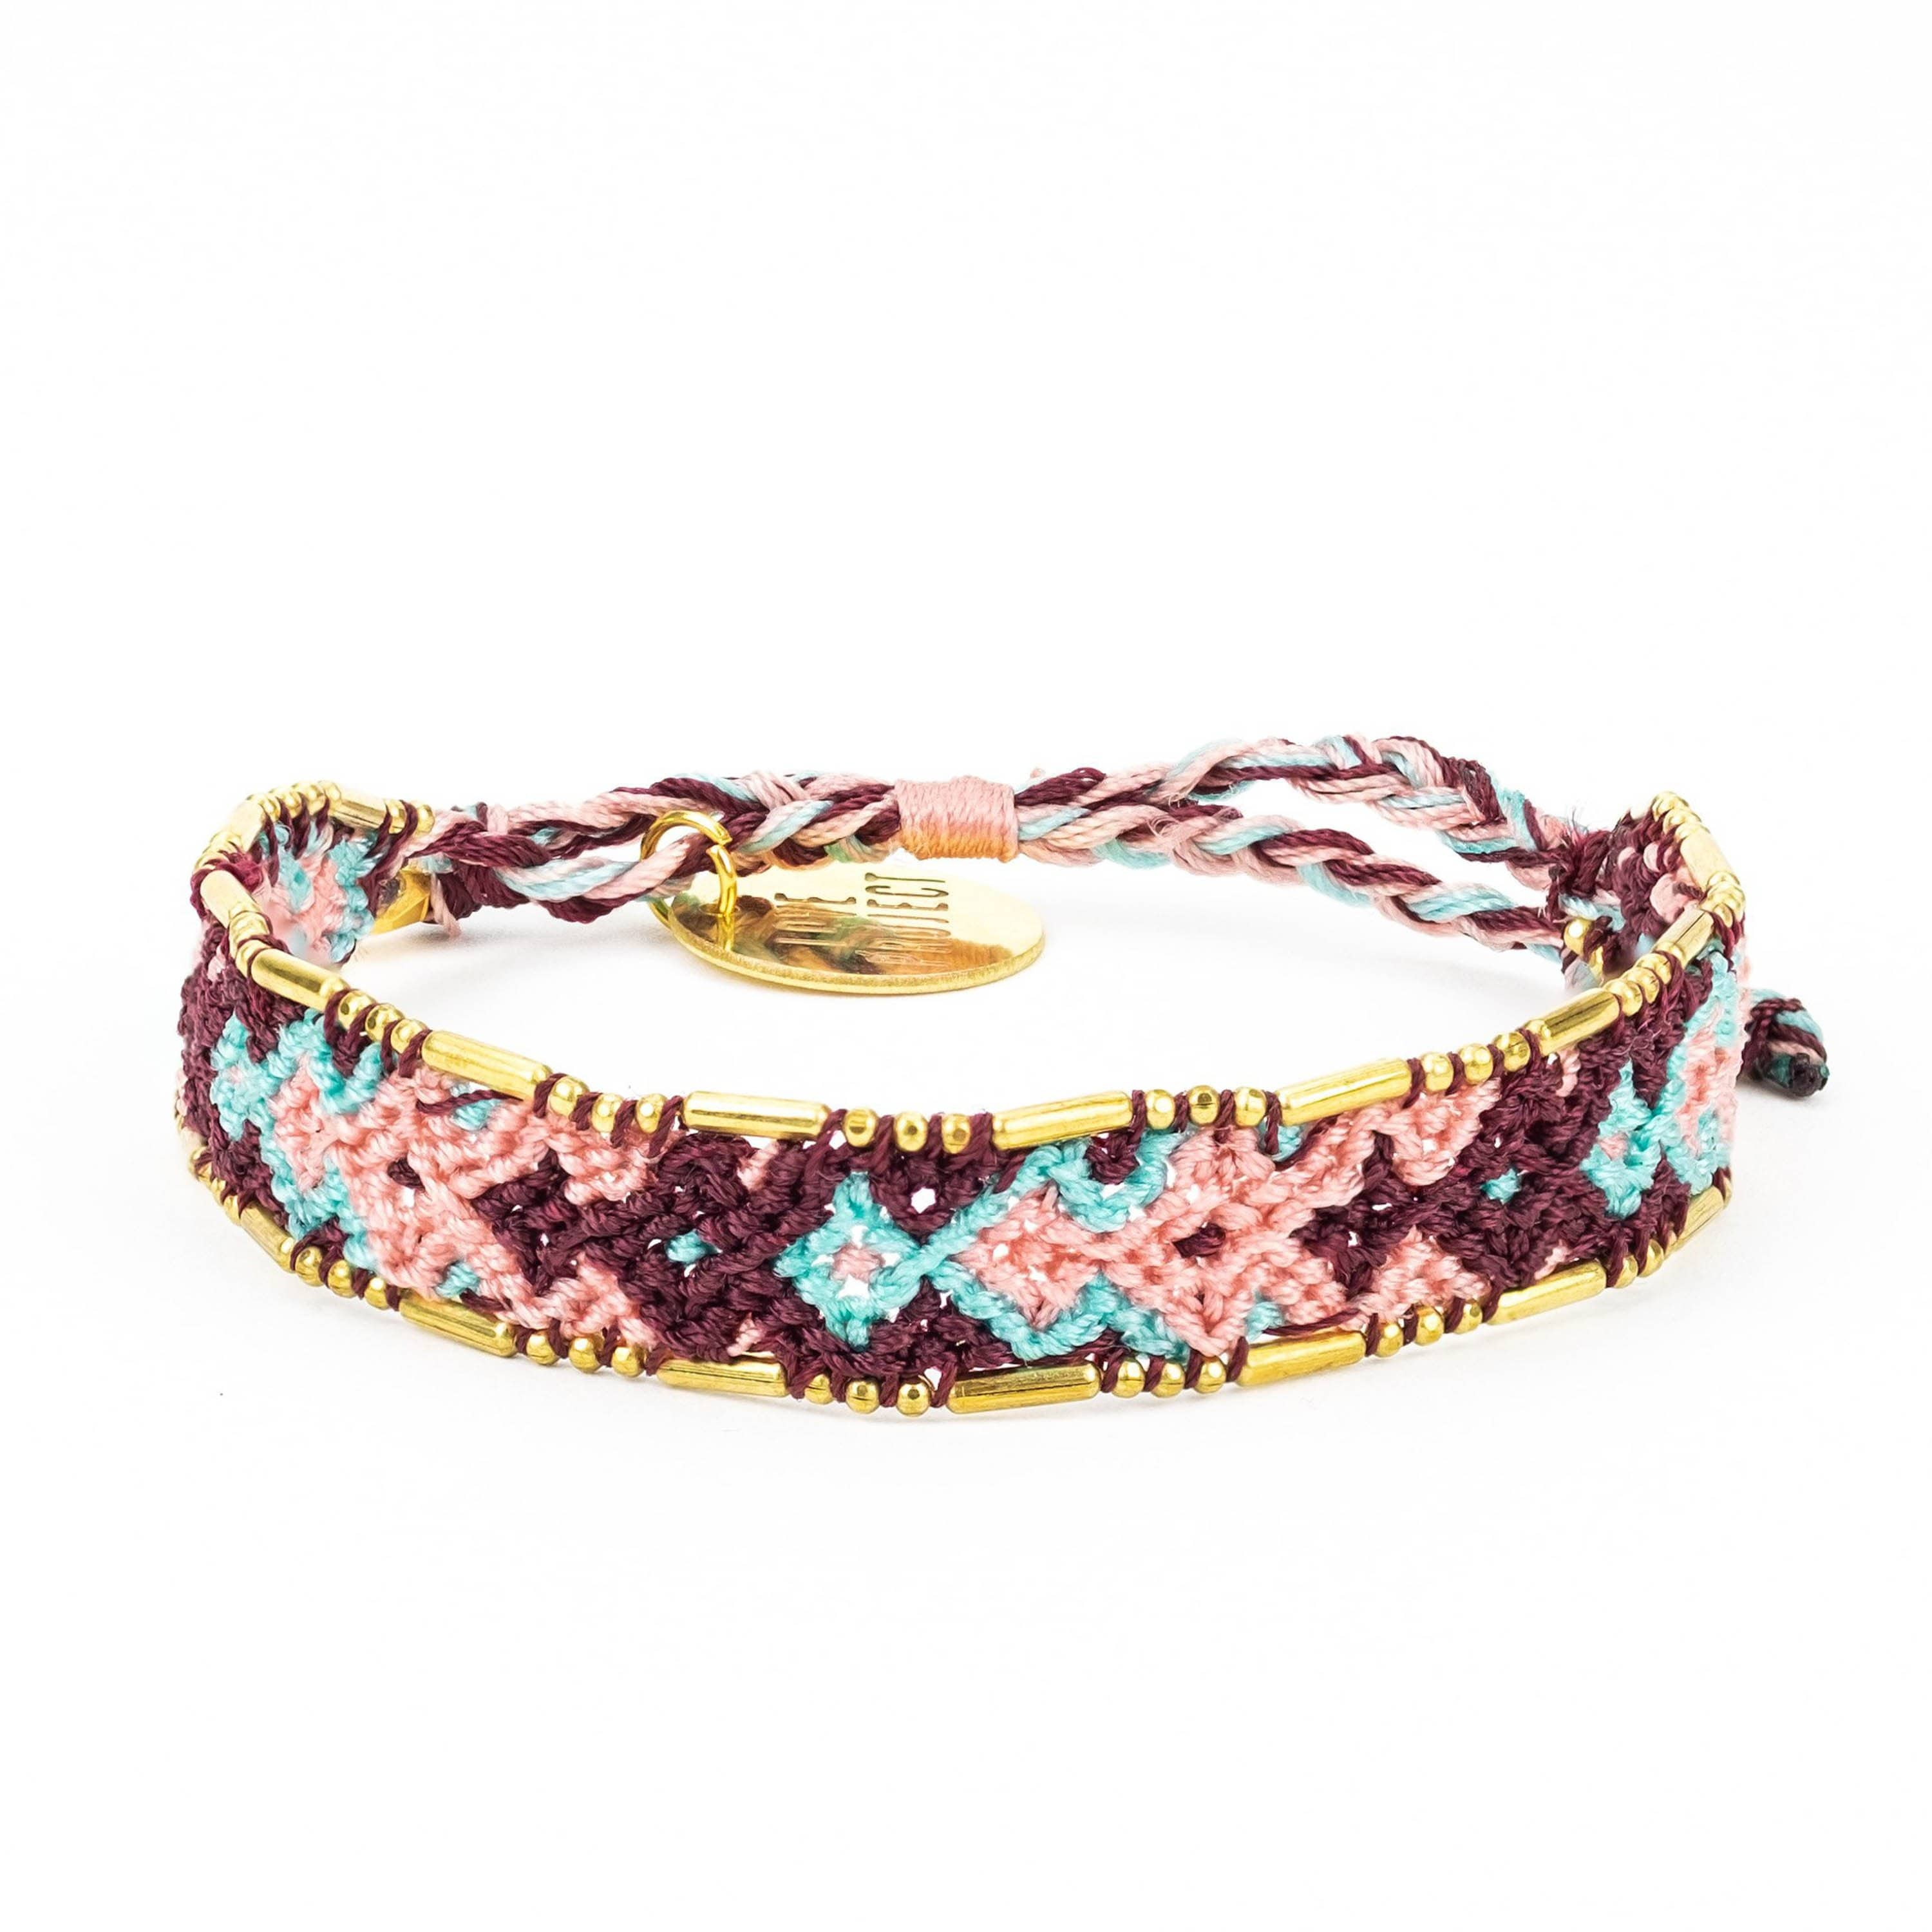 Bundle - Sunset Friendship Bracelets woven beaded Love Is Project bracelets made by female artisans in Bali, Indonesia. Creates jobs